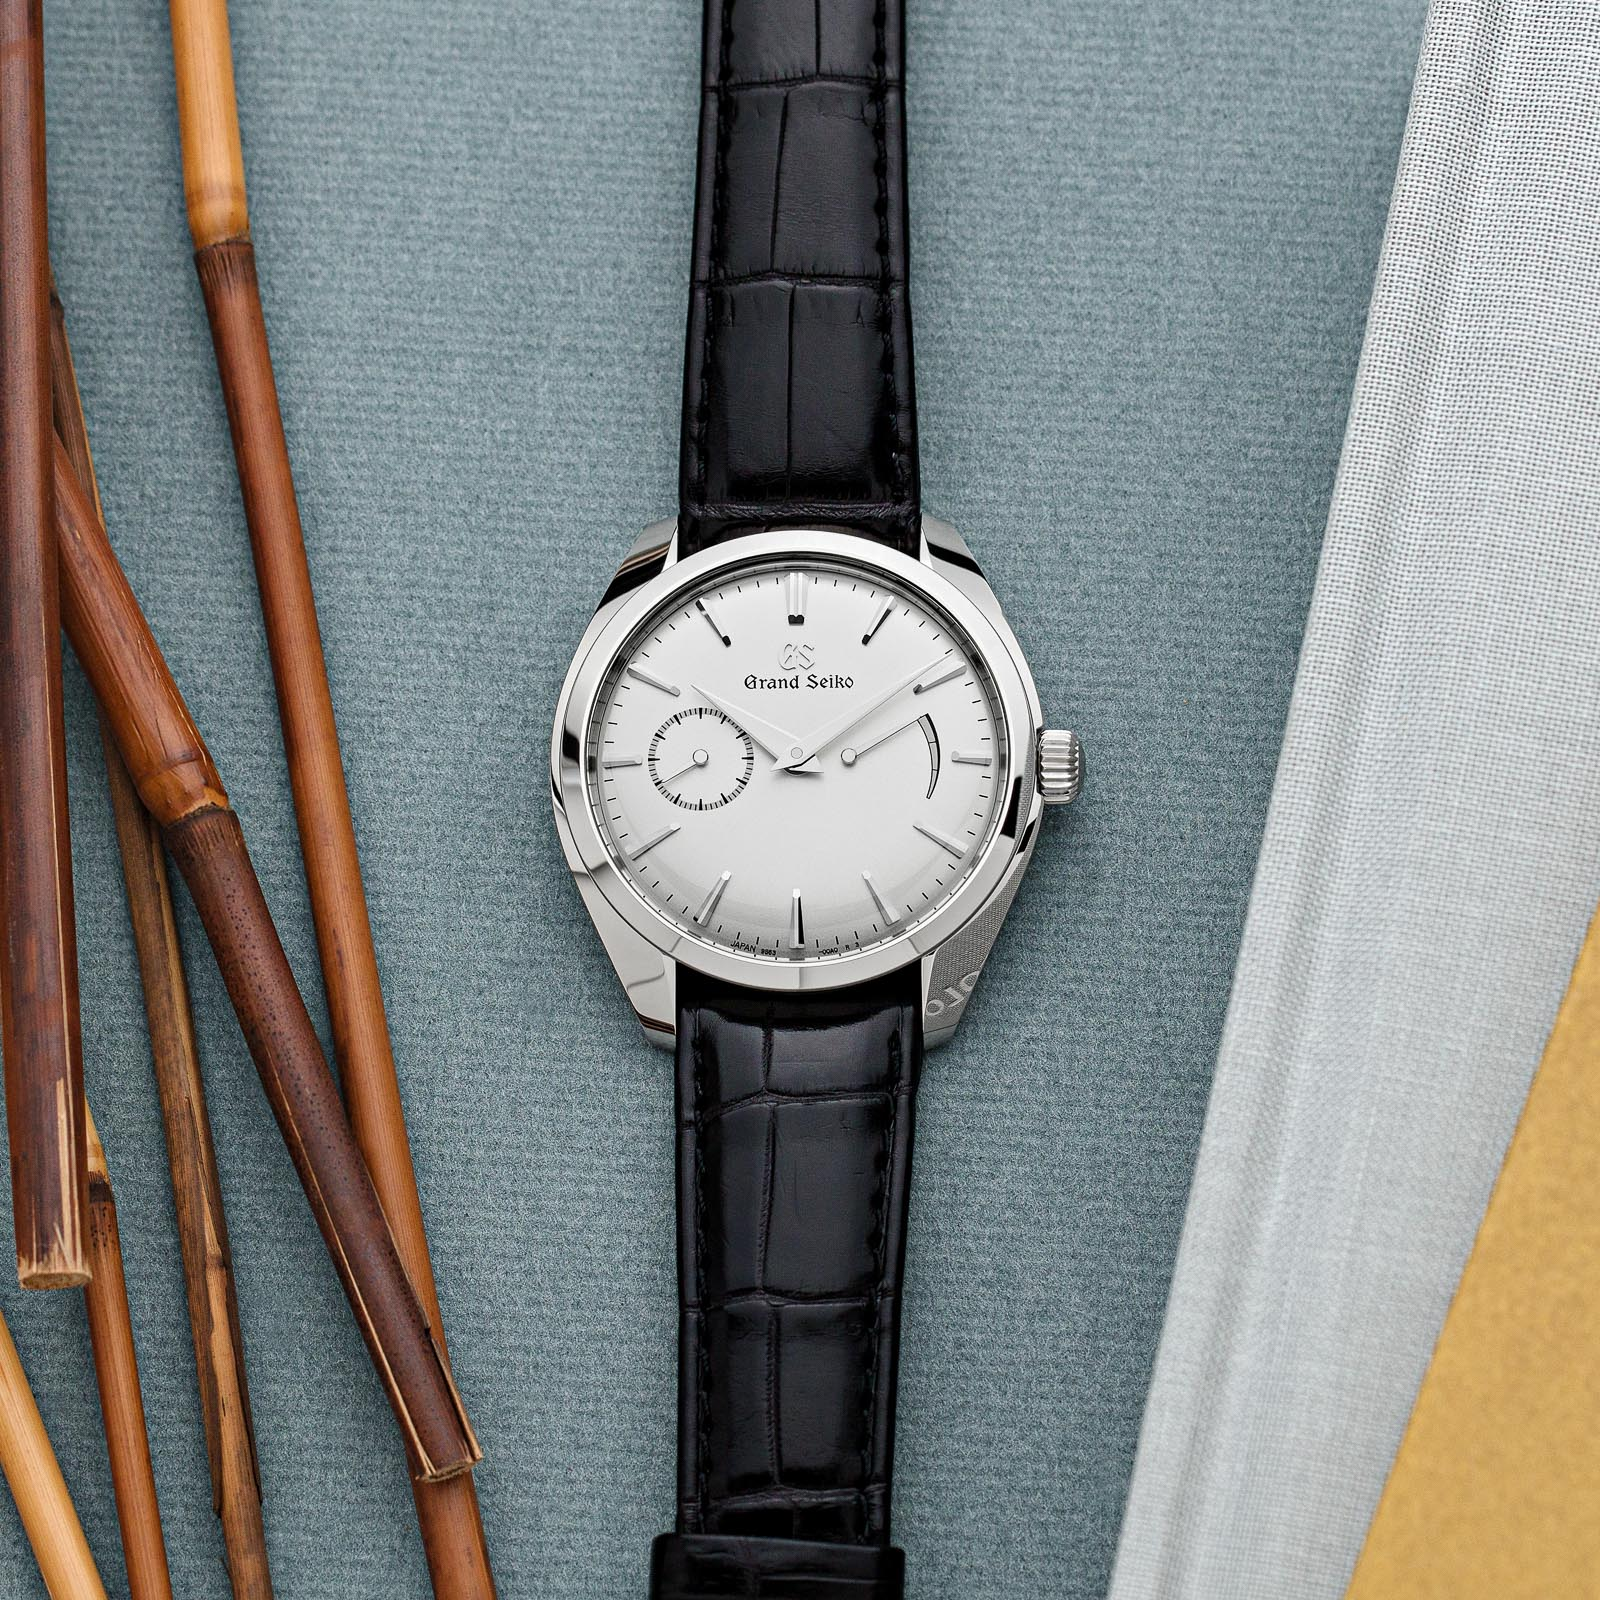 Grand Seiko stainless steel dress watch with a light dial and black crocodile strap.